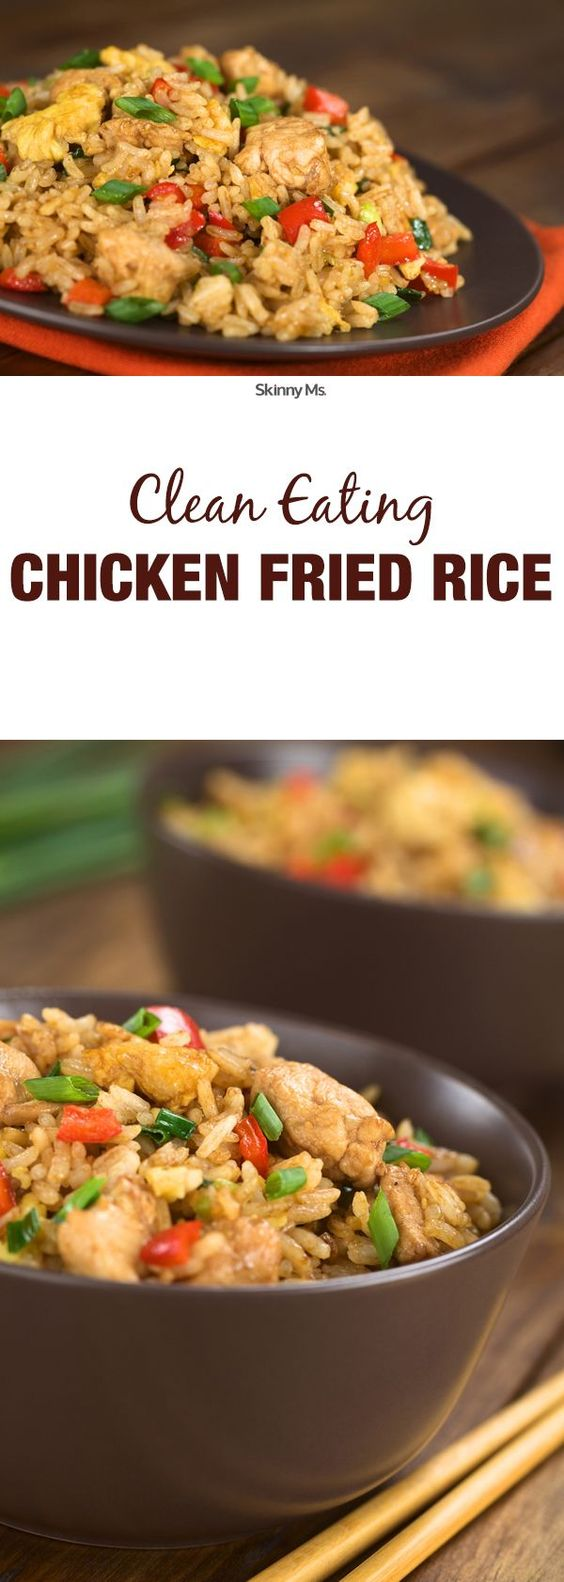 Clean Eating Chicken Fried Rice #Clean #Eating #Chicken #Fried #Rice   #DESSERTS #HEALTHYFOOD #EASY_RECIPES #DINNER #LAUCH #DELICIOUS #EASY #HOLIDAYS #RECIPE #SPECIAL_DIET #WORLD_CUISINE #CAKE #GRILL #APPETIZERS #HEALTHY_RECIPES #DRINKS #COOKING_METHOD #ITALIAN_RECIPES #MEAT #VEGAN_RECIPES #COOKIES #PASTA #FRUIT #SALAD #SOUP_APPETIZERS #NON_ALCOHOLIC_DRINKS #MEAL_PLANNING #VEGETABLES #SOUP #PASTRY #CHOCOLATE #DAIRY #ALCOHOLIC_DRINKS #BULGUR_SALAD #BAKING #SNACKS #BEEF_RECIPES #MEAT_APPETIZERS #MEXICAN_RECIPES #BREAD #ASIAN_RECIPES #SEAFOOD_APPETIZERS #MUFFINS #BREAKFAST_AND_BRUNCH #CONDIMENTS #CUPCAKES #CHEESE #CHICKEN_RECIPES #PIE #COFFEE #NO_BAKE_DESSERTS #HEALTHY_SNACKS #SEAFOOD #GRAIN #LUNCHES_DINNERS #MEXICAN #QUICK_BREAD #LIQUOR